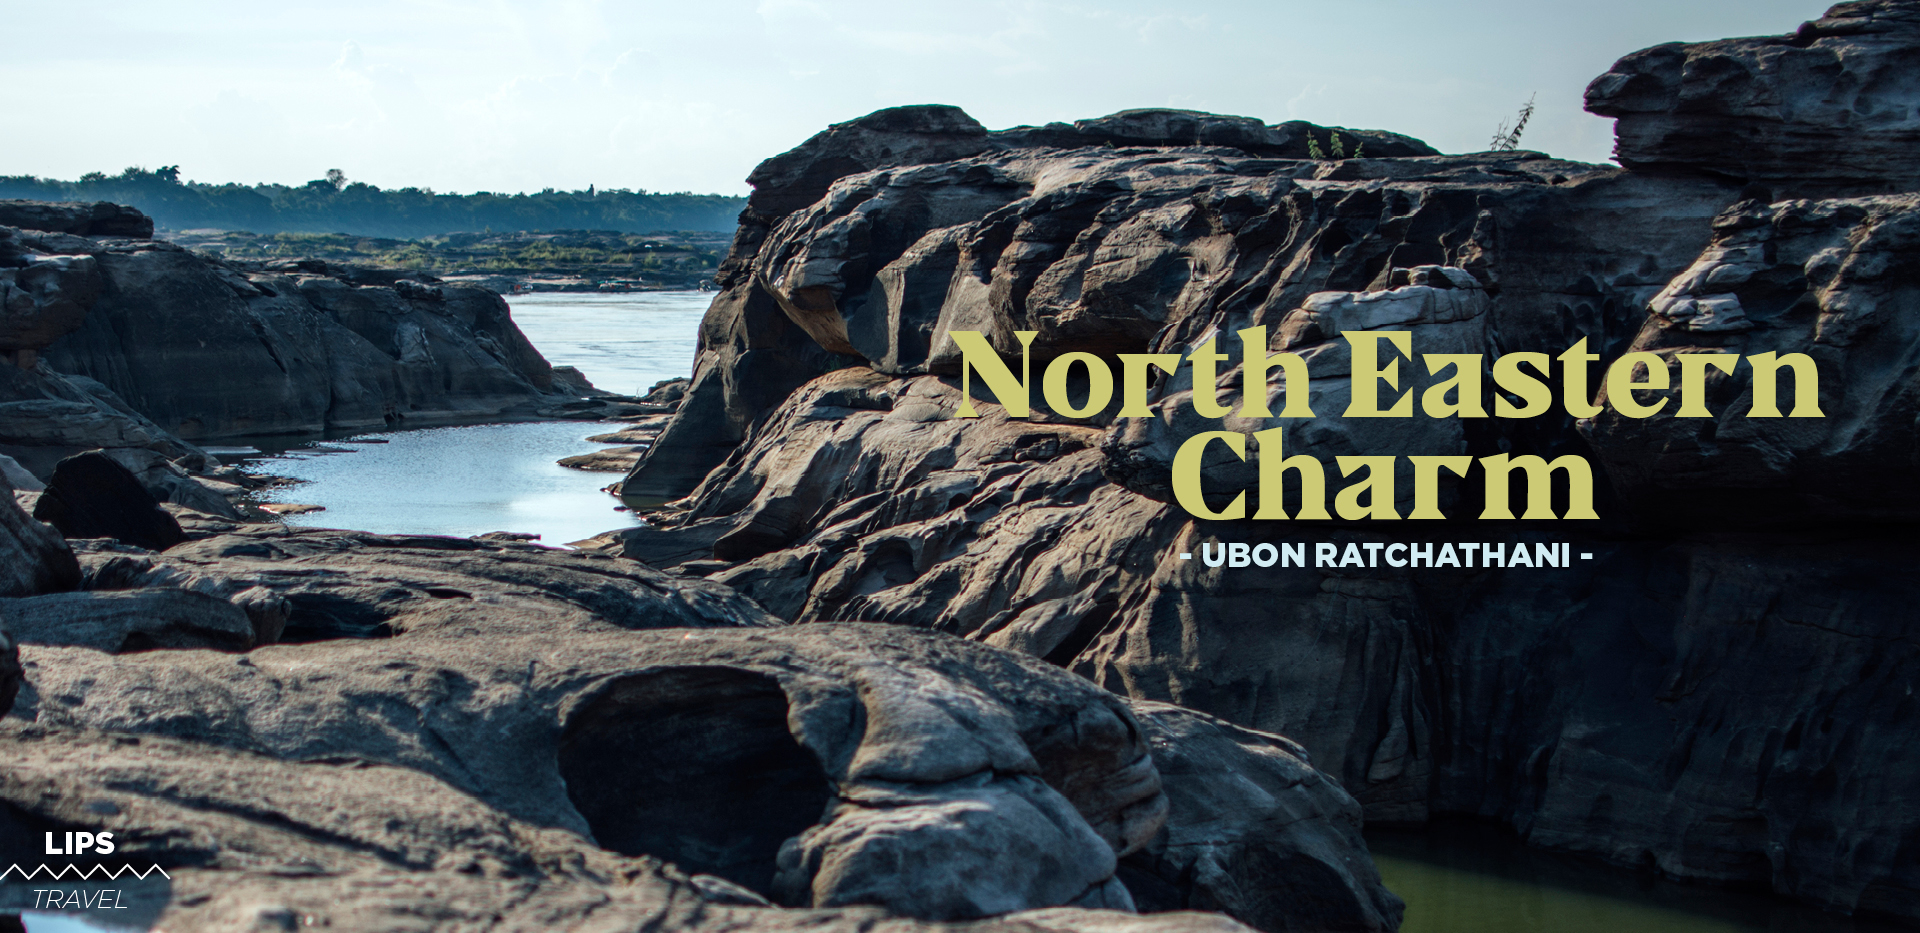 North Eastern Charm – Ubon Ratchathani